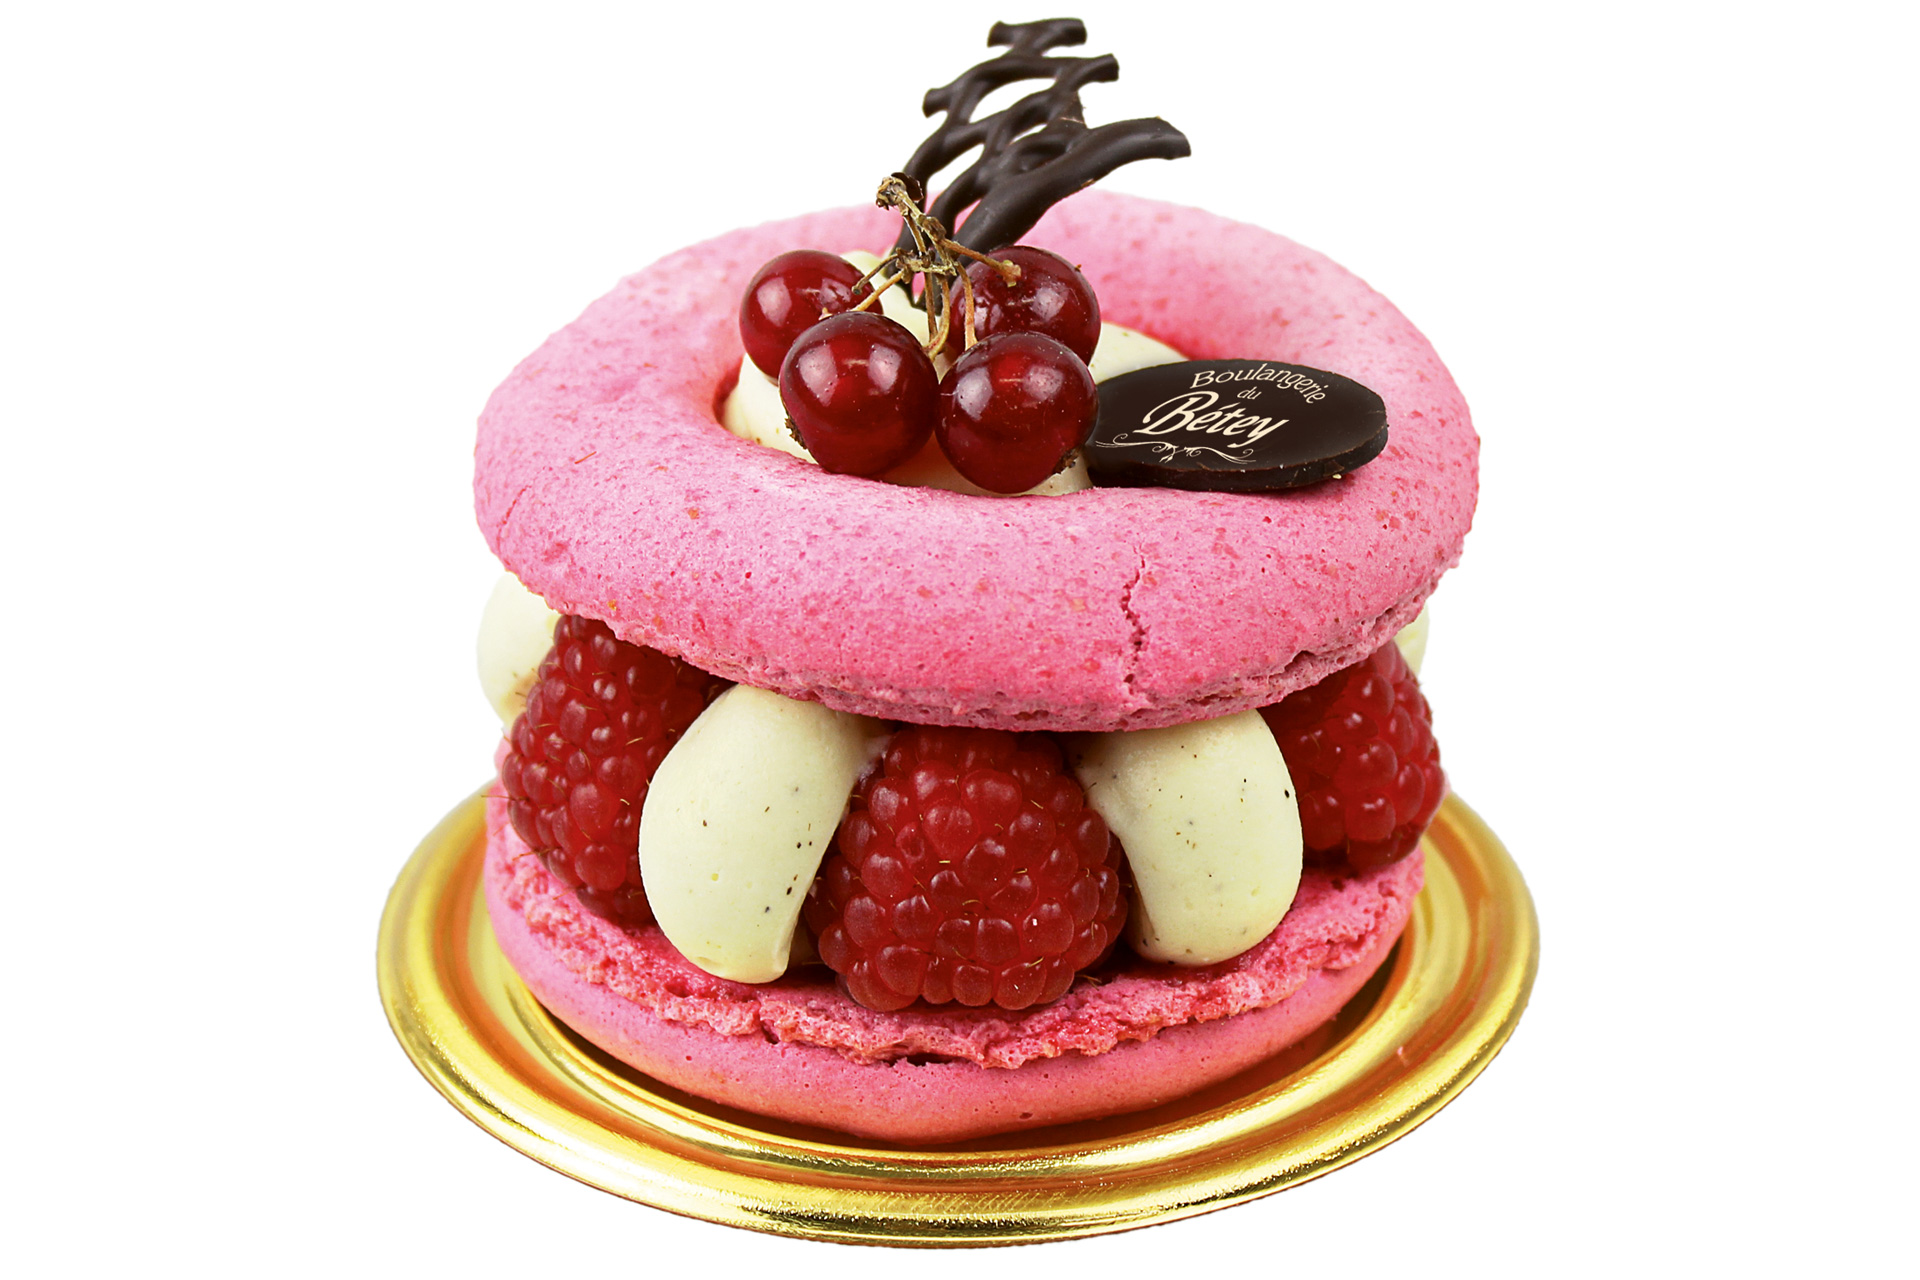 Macaron-framboises-litchis-andernos-jannel